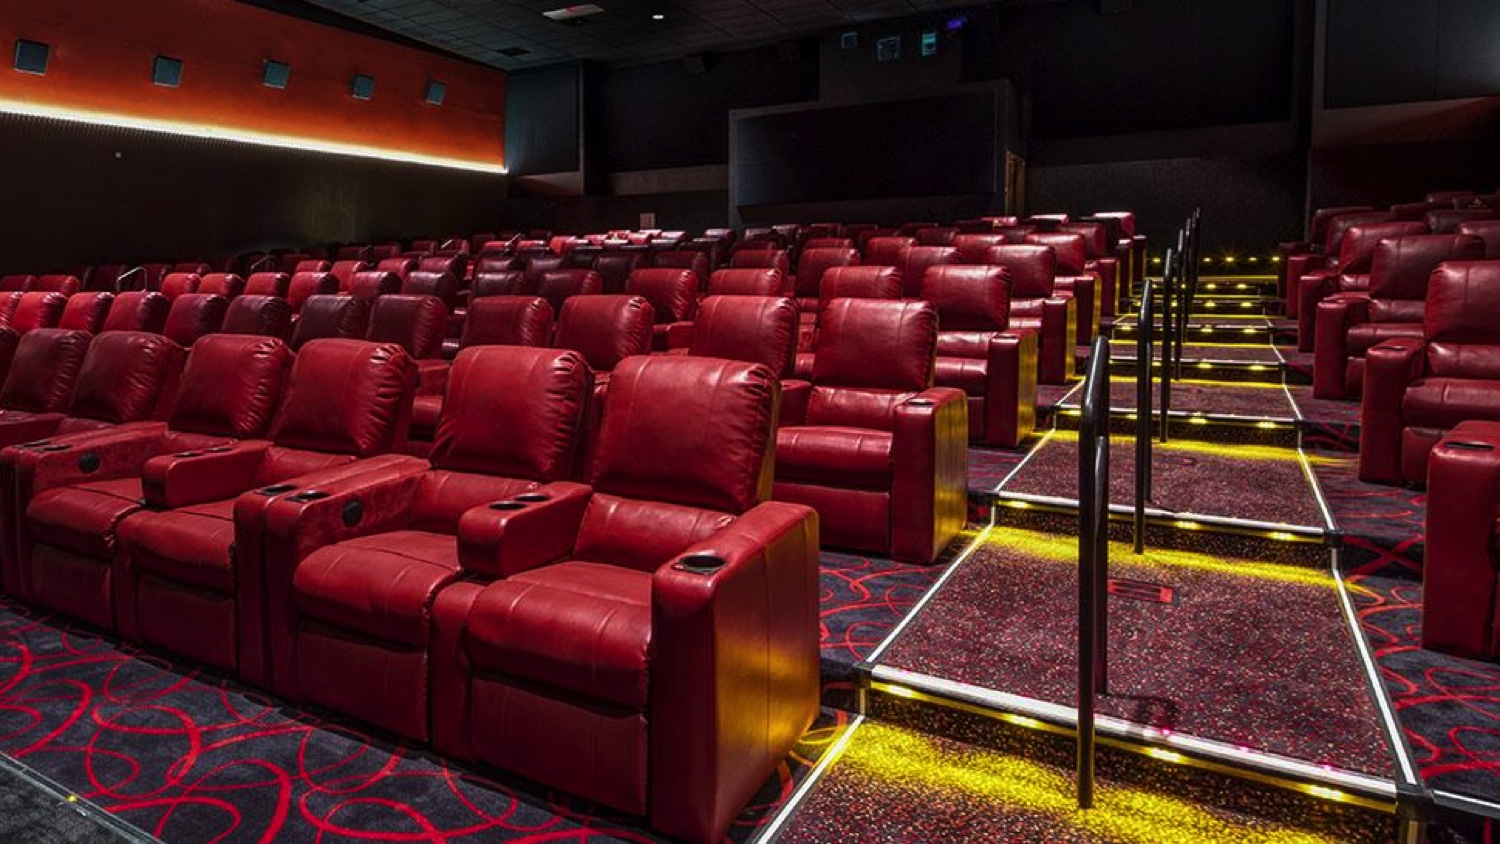 AMC Woodhaven 10 in Bensalem, PA - get movie showtimes and tickets online, movie information and more from Moviefone.